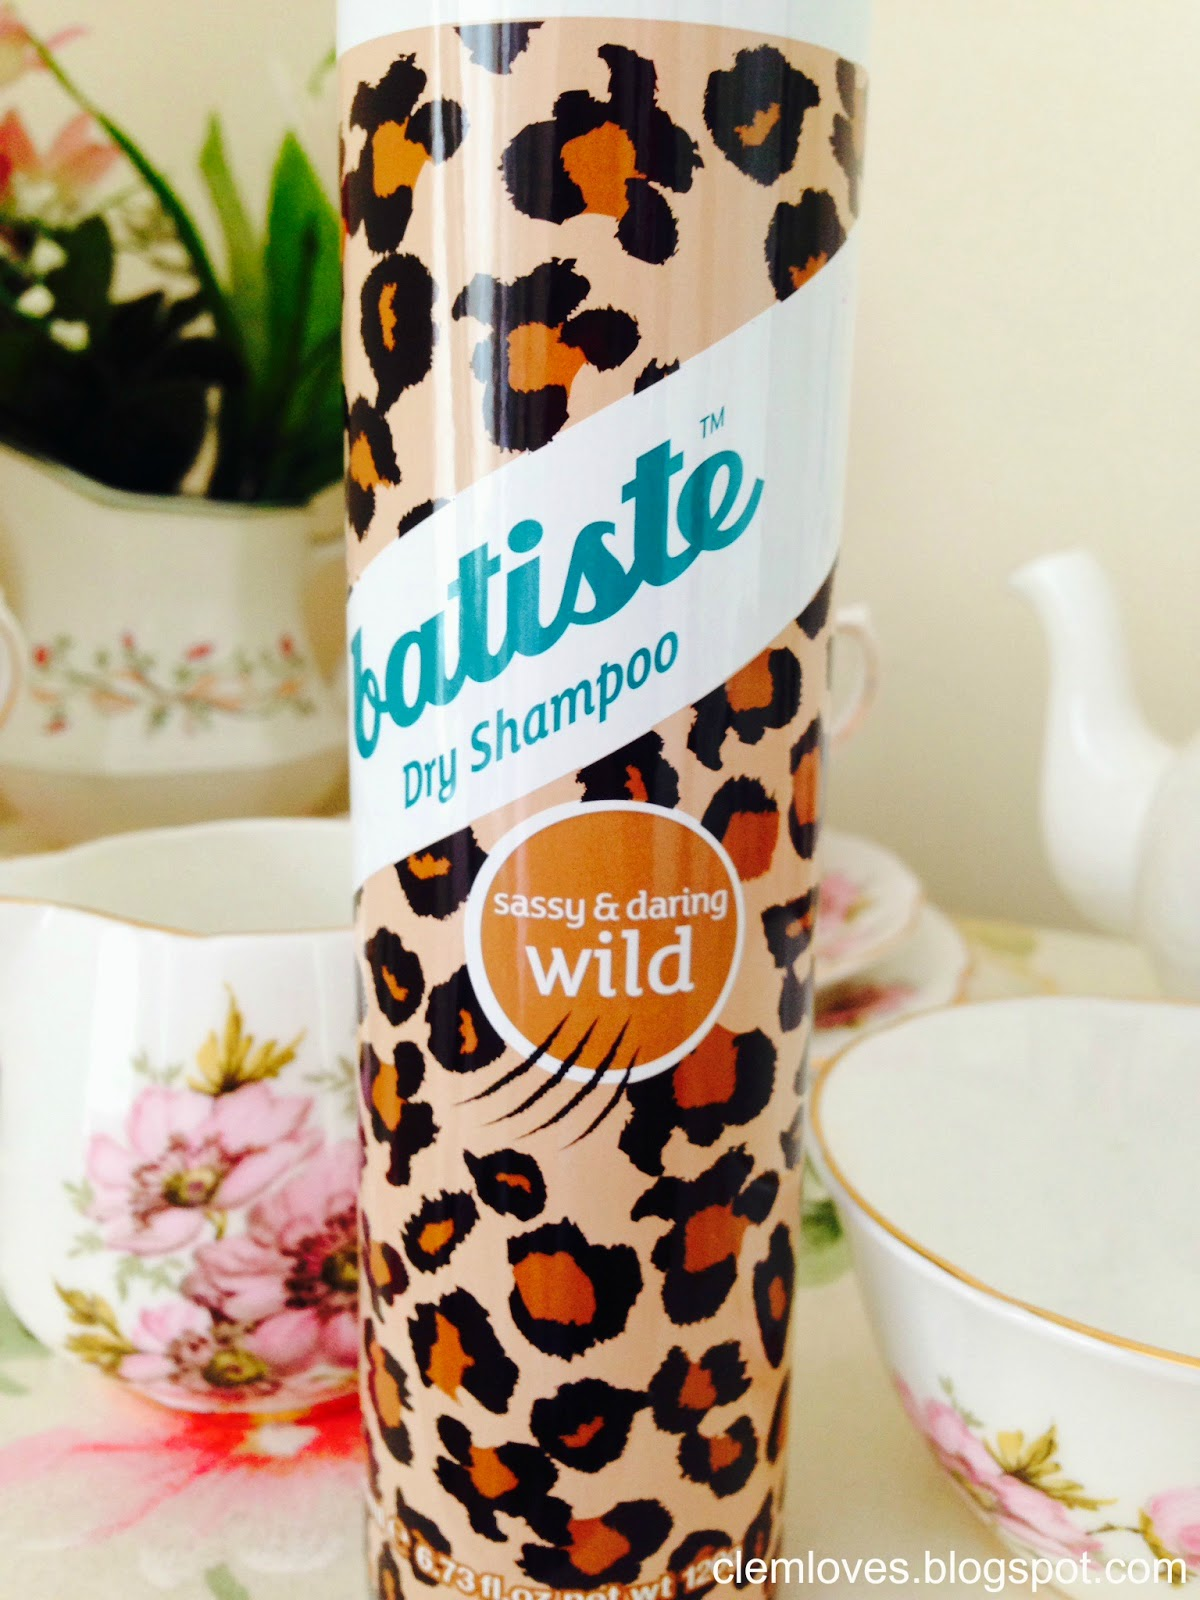 Batiste Dry Shampoo Review Clem Loves Wild I Am Obsessed With This By And Let Me Tell You They Smells So Amazing A Huge Fan Of Im Hooked On These